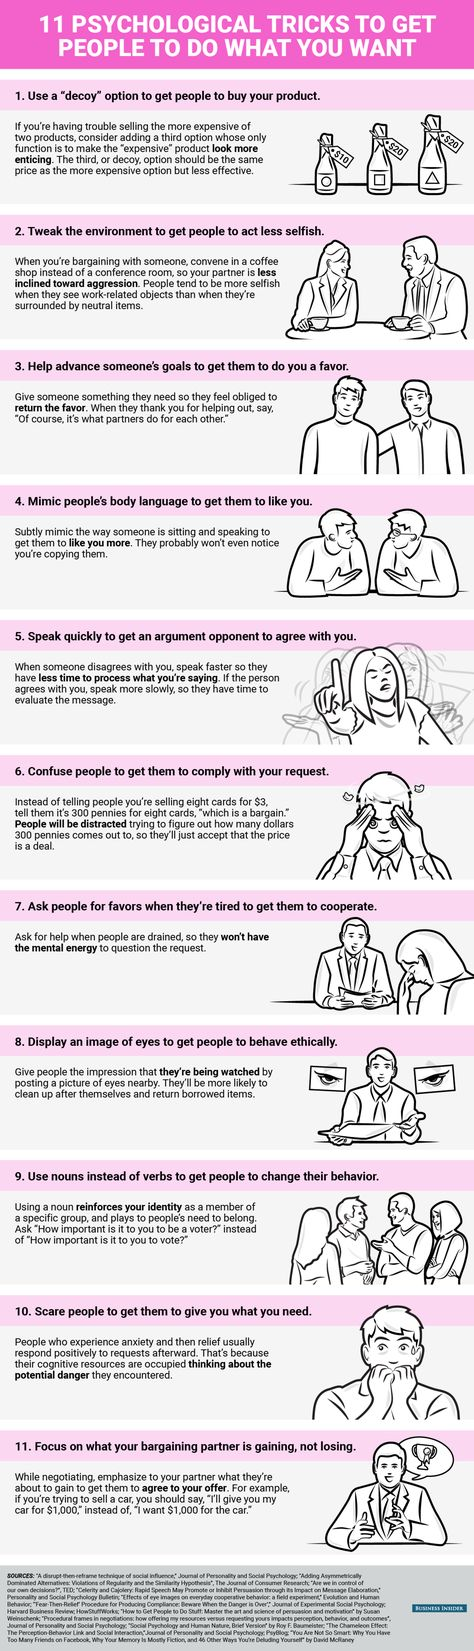 Get People to Do What You Want With These 11 Clever Psychological Tricks